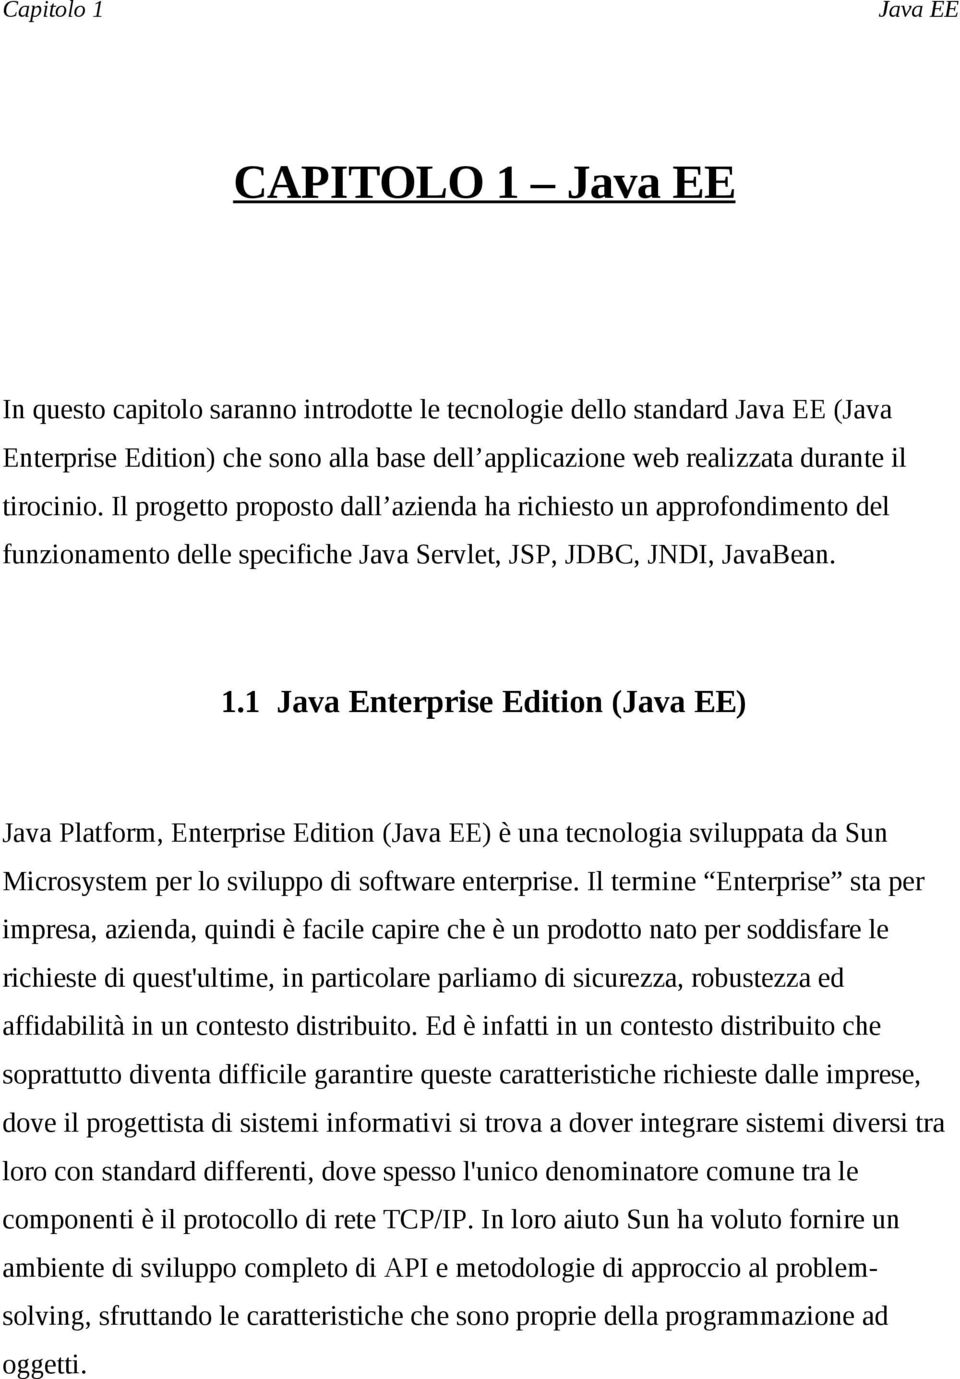 1 Java Enterprise Edition (Java EE) Java Platform, Enterprise Edition (Java EE) è una tecnologia sviluppata da Sun Microsystem per lo sviluppo di software enterprise.